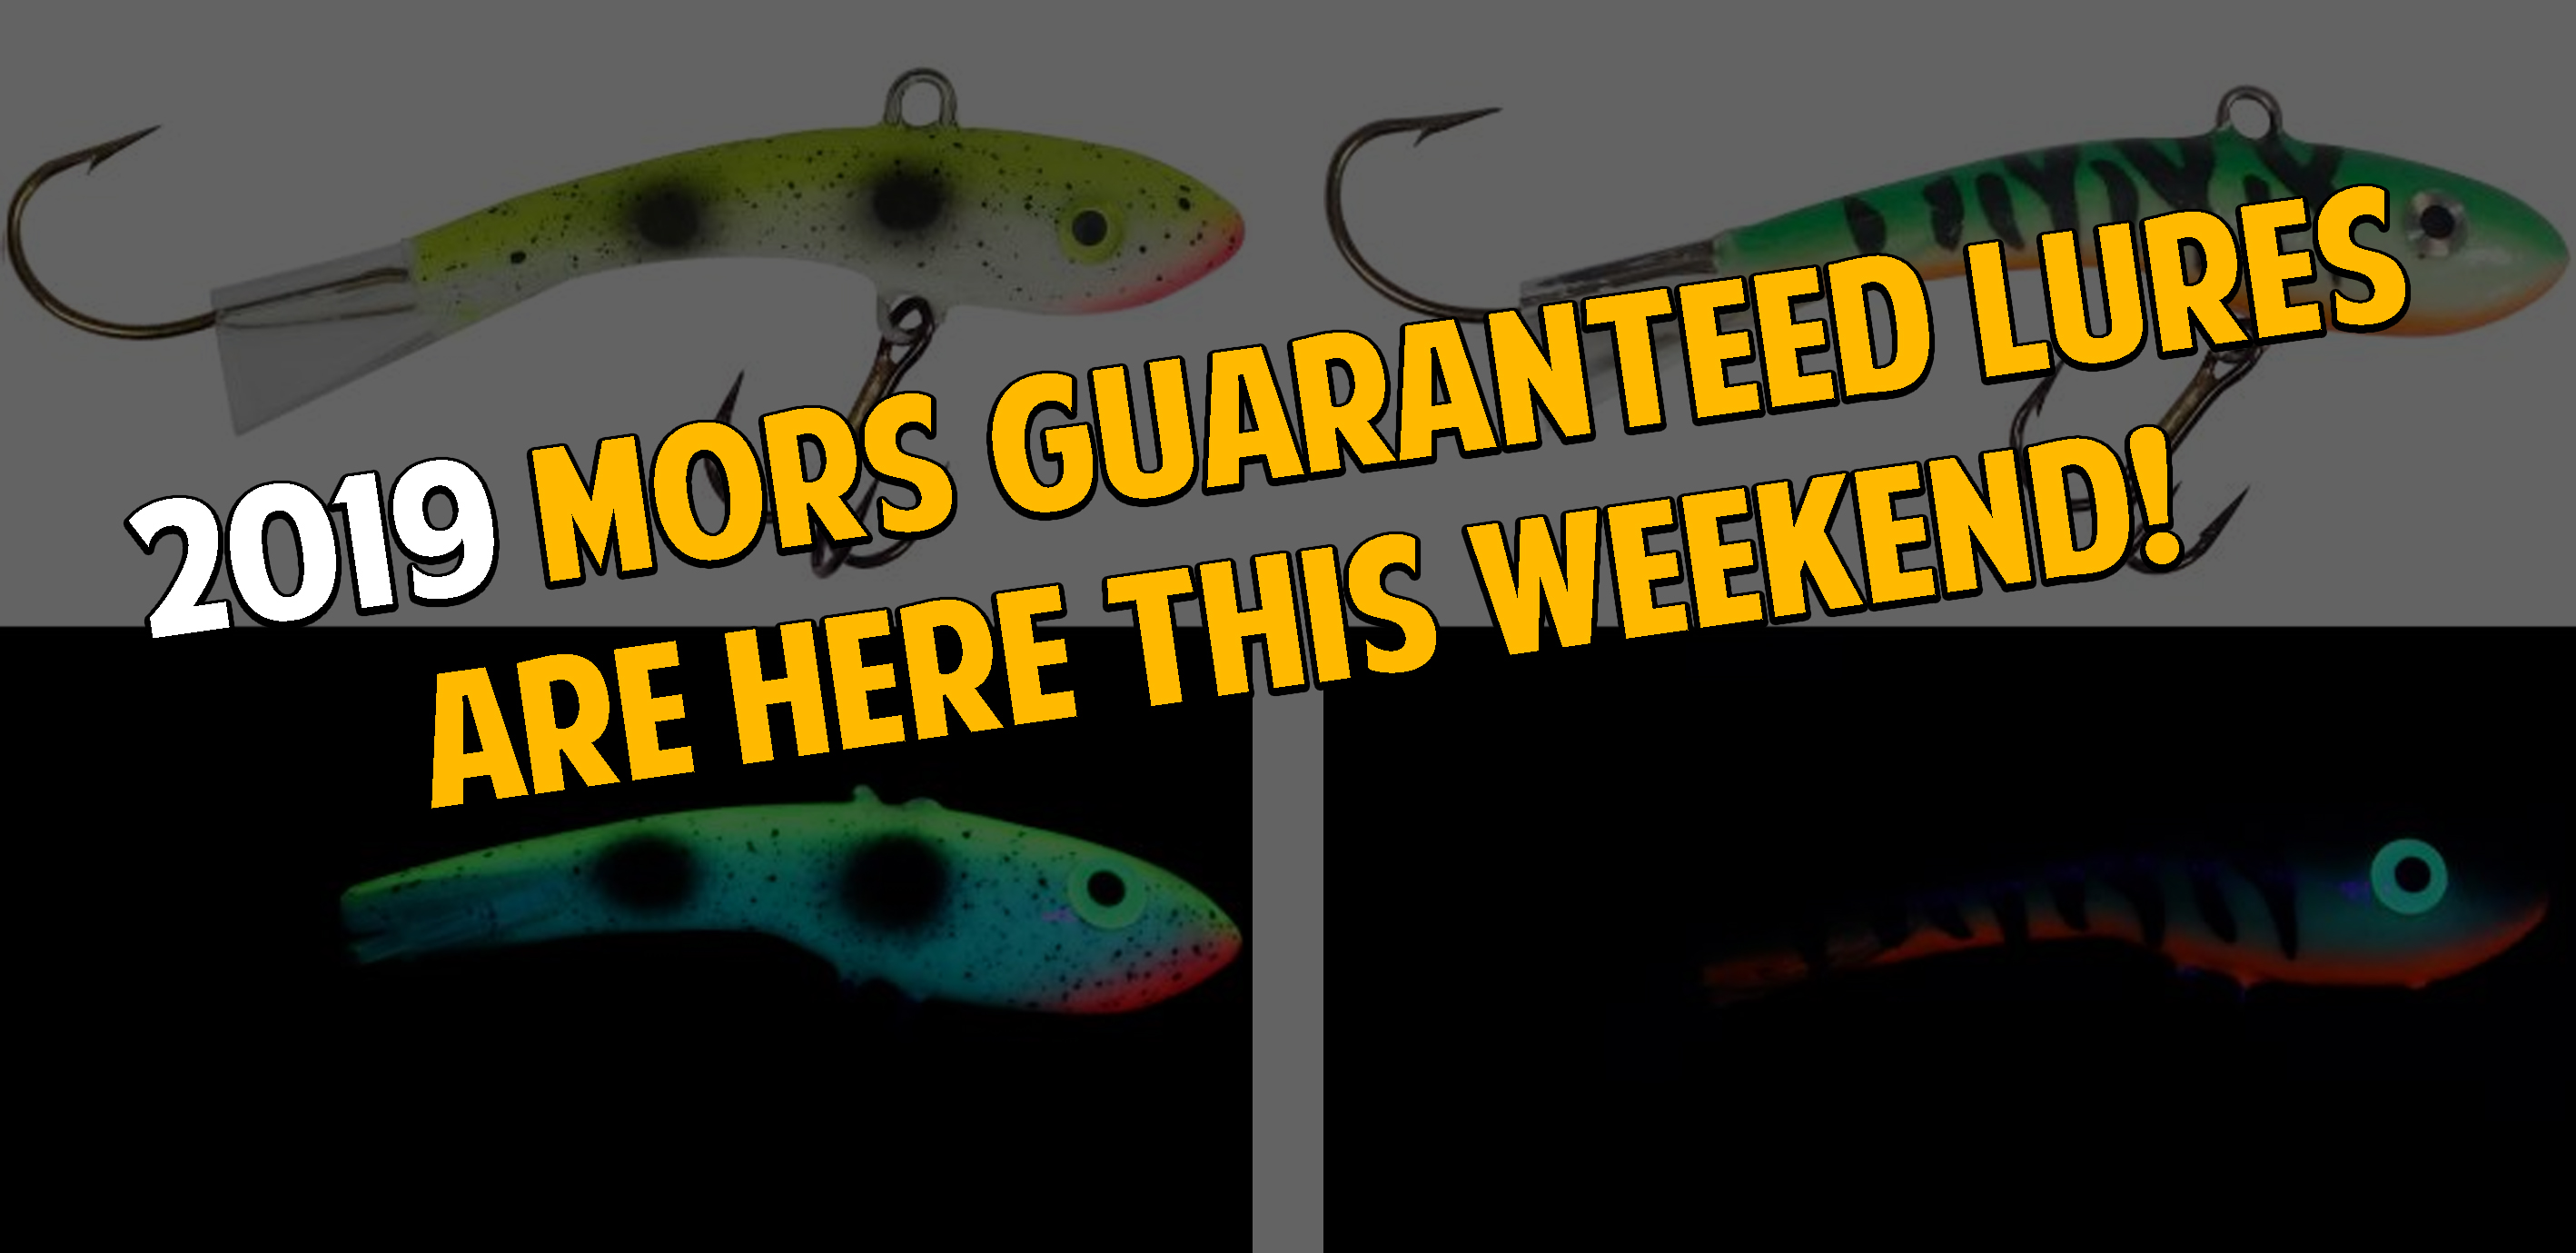 Catch fish with the 2019 MORS Guarantee Lures this weekend ...